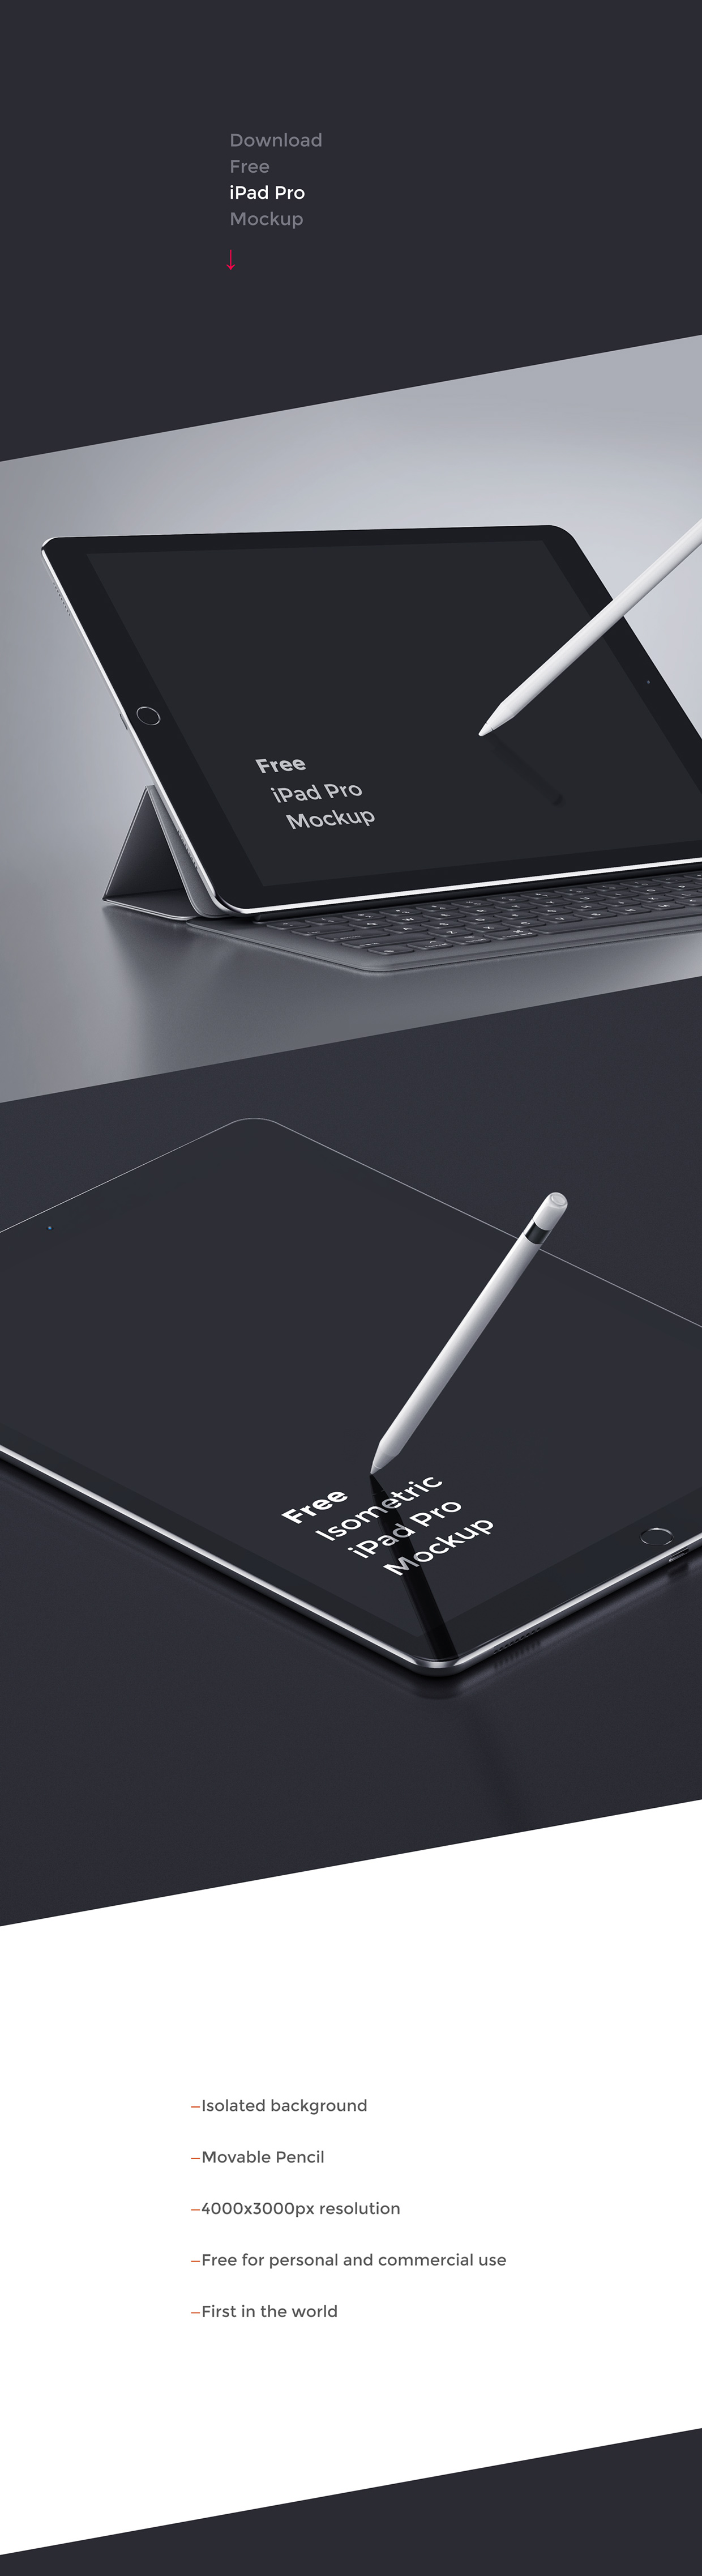 iPad Pro Free Mockup on Behance